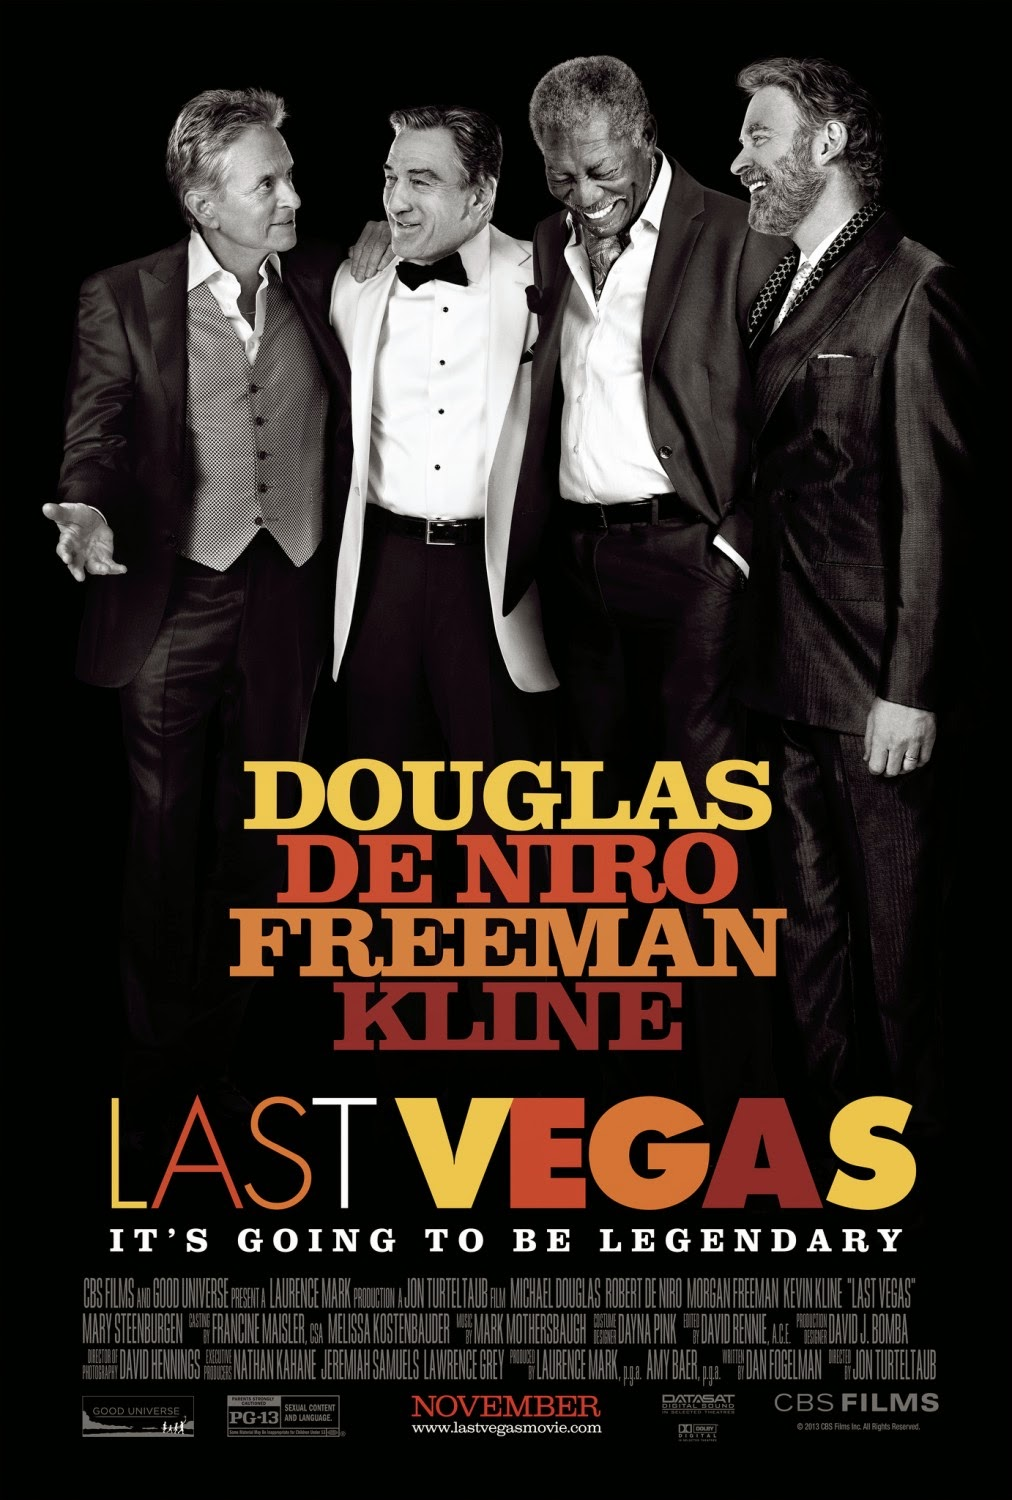 Maturity and predictability party in 'Last Vegas'